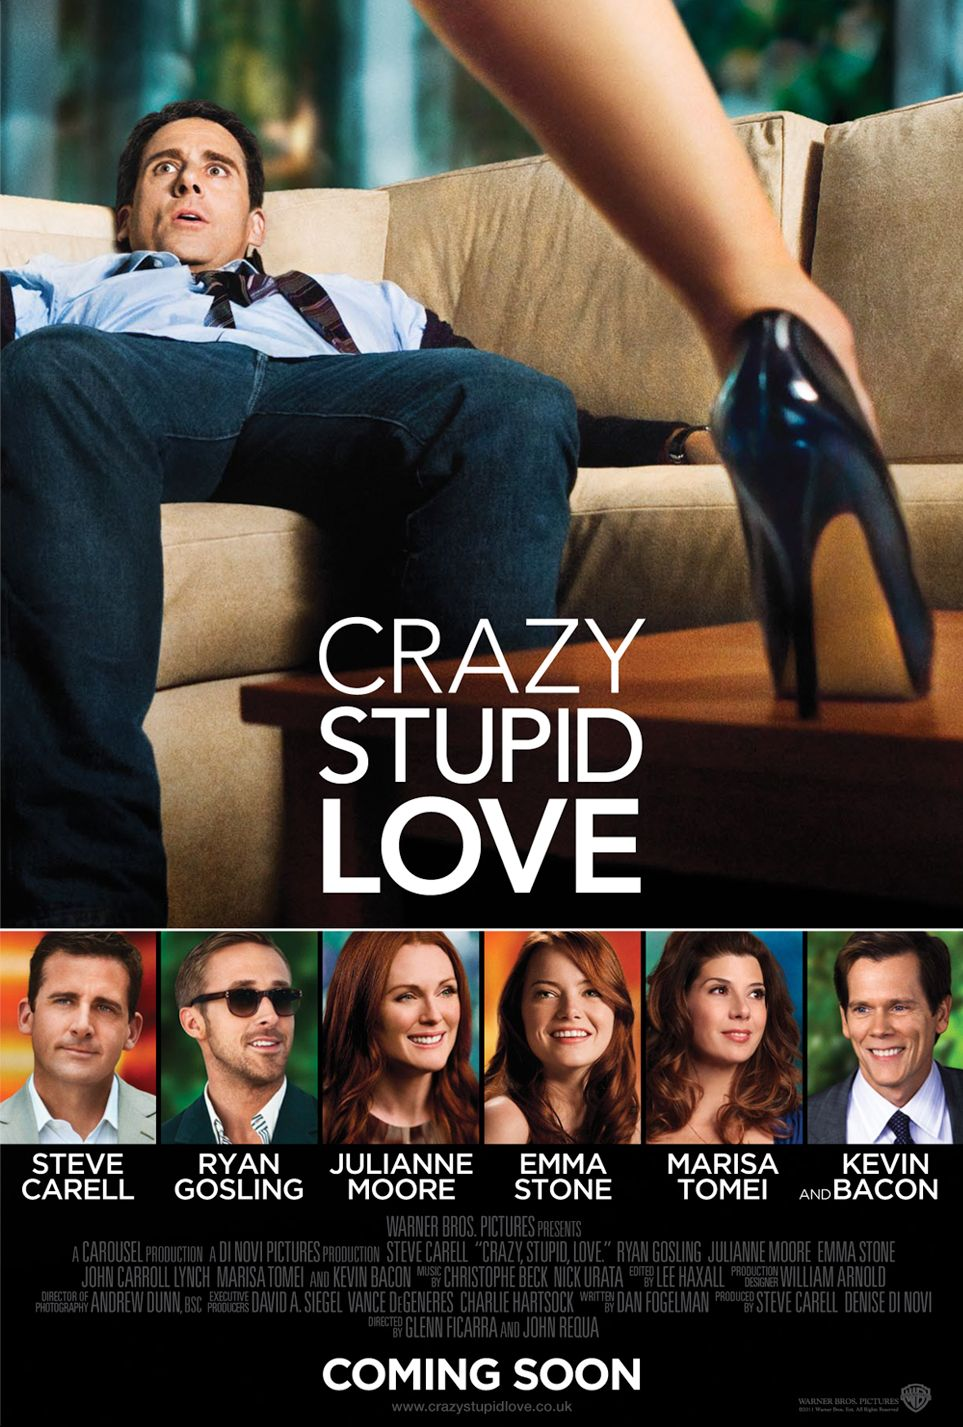 Crazy Stupid Love Just Love Anything With Gosling In It Filmes